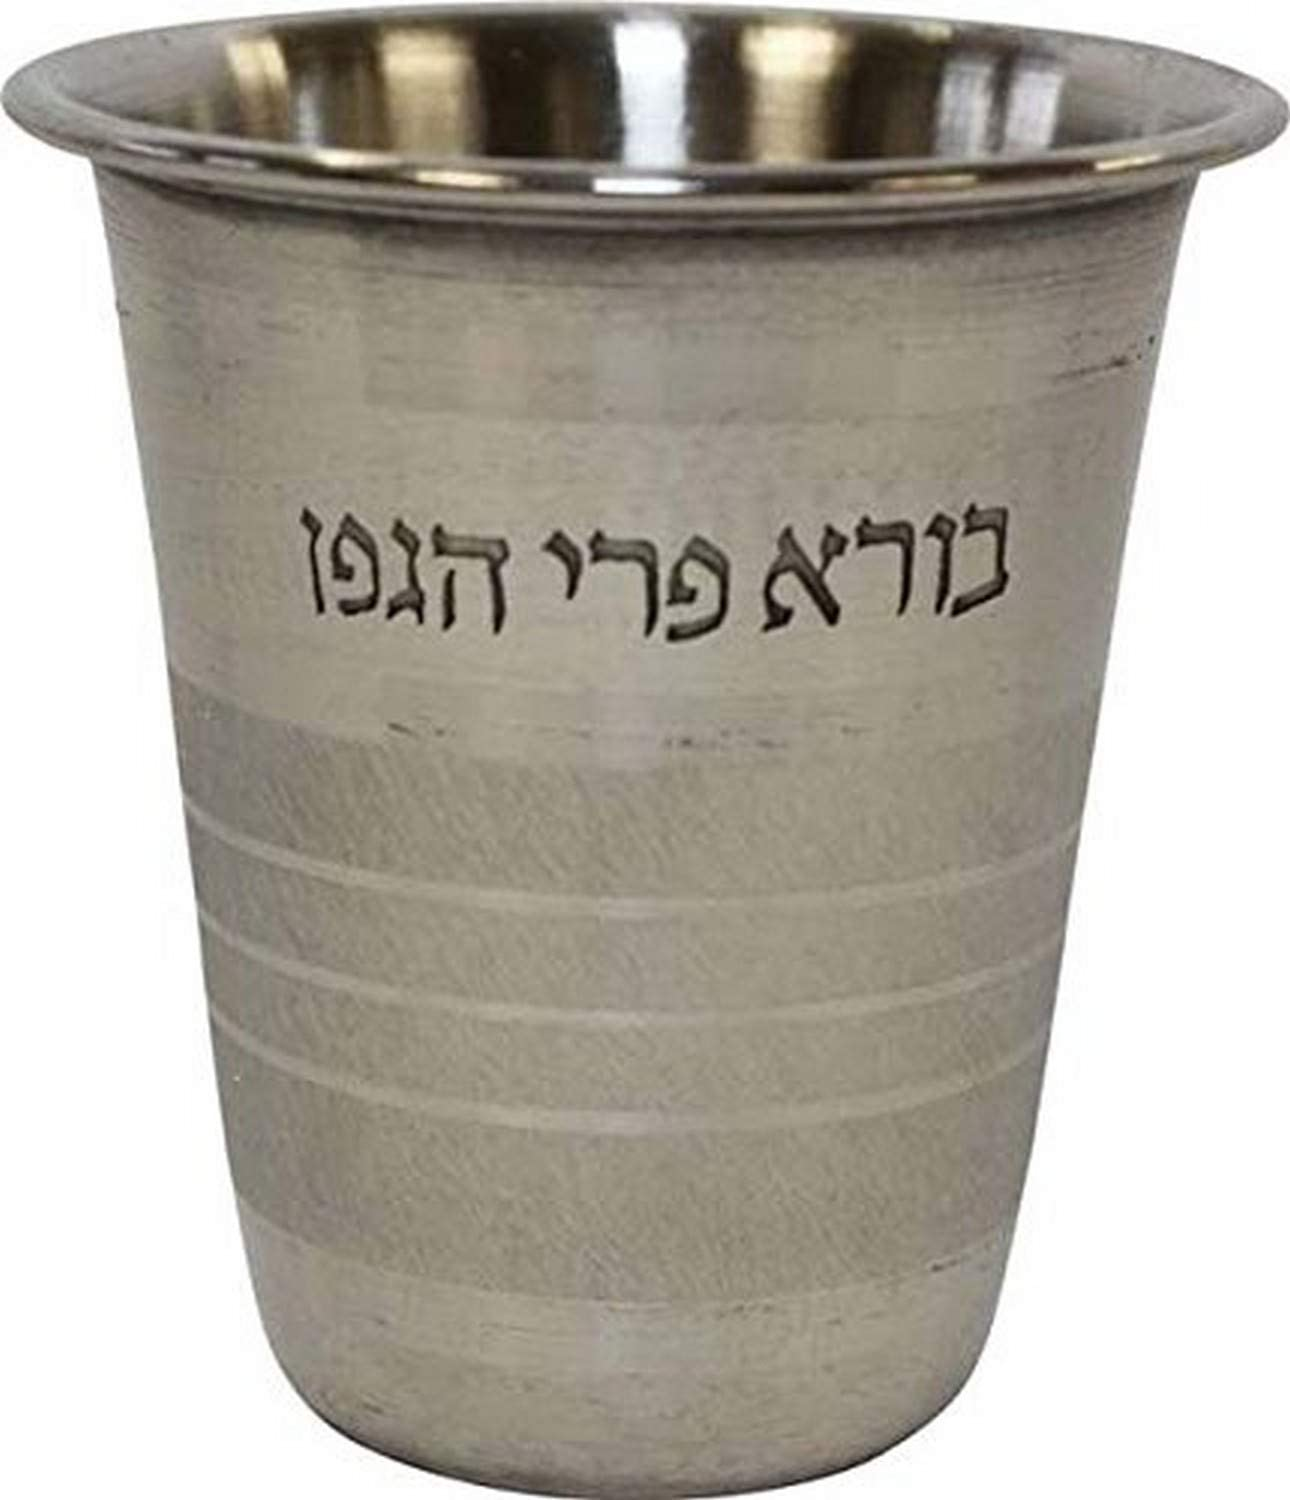 Low price Majestic Special sale item Giftware SSKC12 Stainless Steel Kiddush 3-Inch Cup